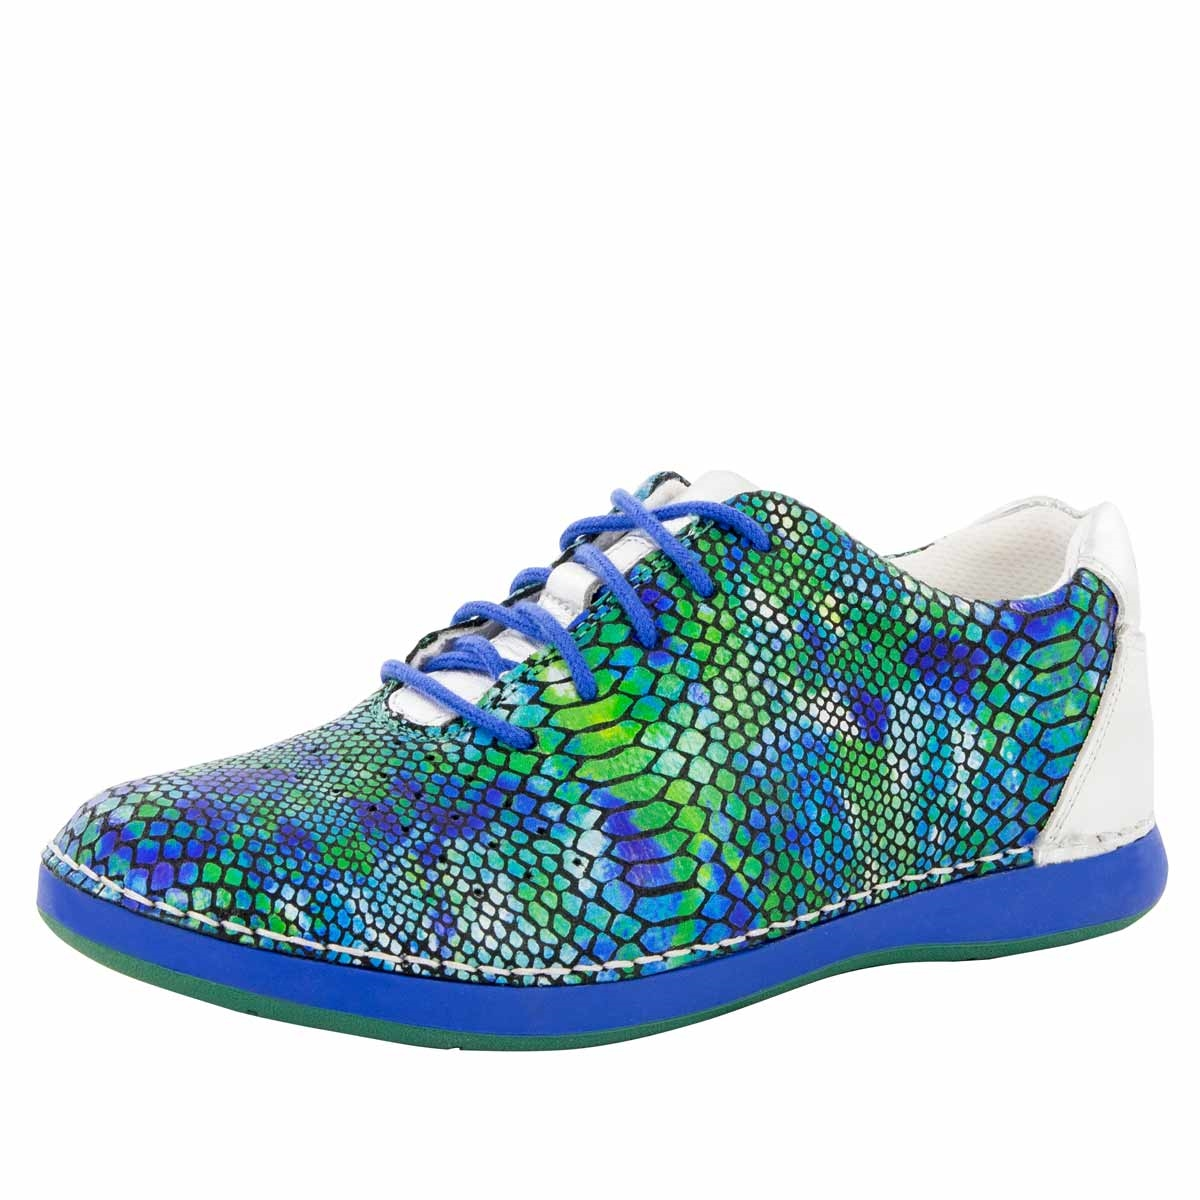 f66b68d0eb Women s Athletic Shoes from Alegria Shoes